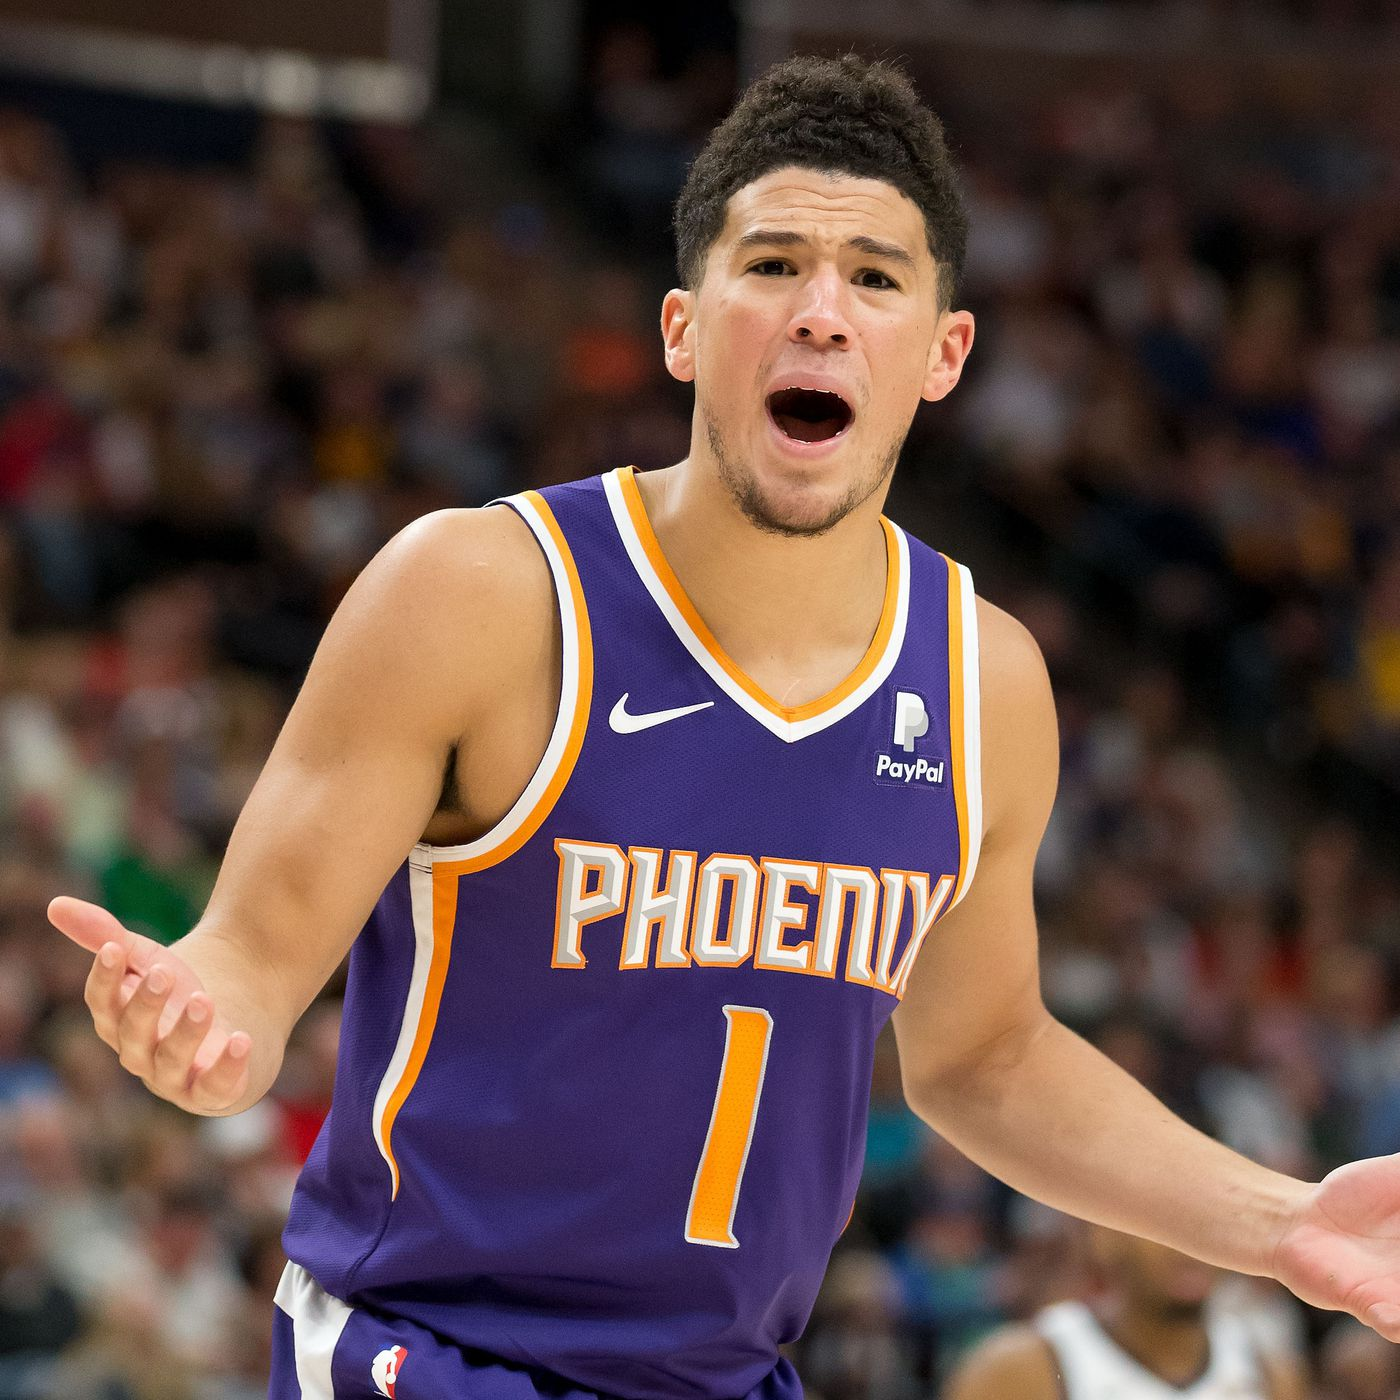 2020 Nba Championship Odds The Phoenix Suns Are Not The